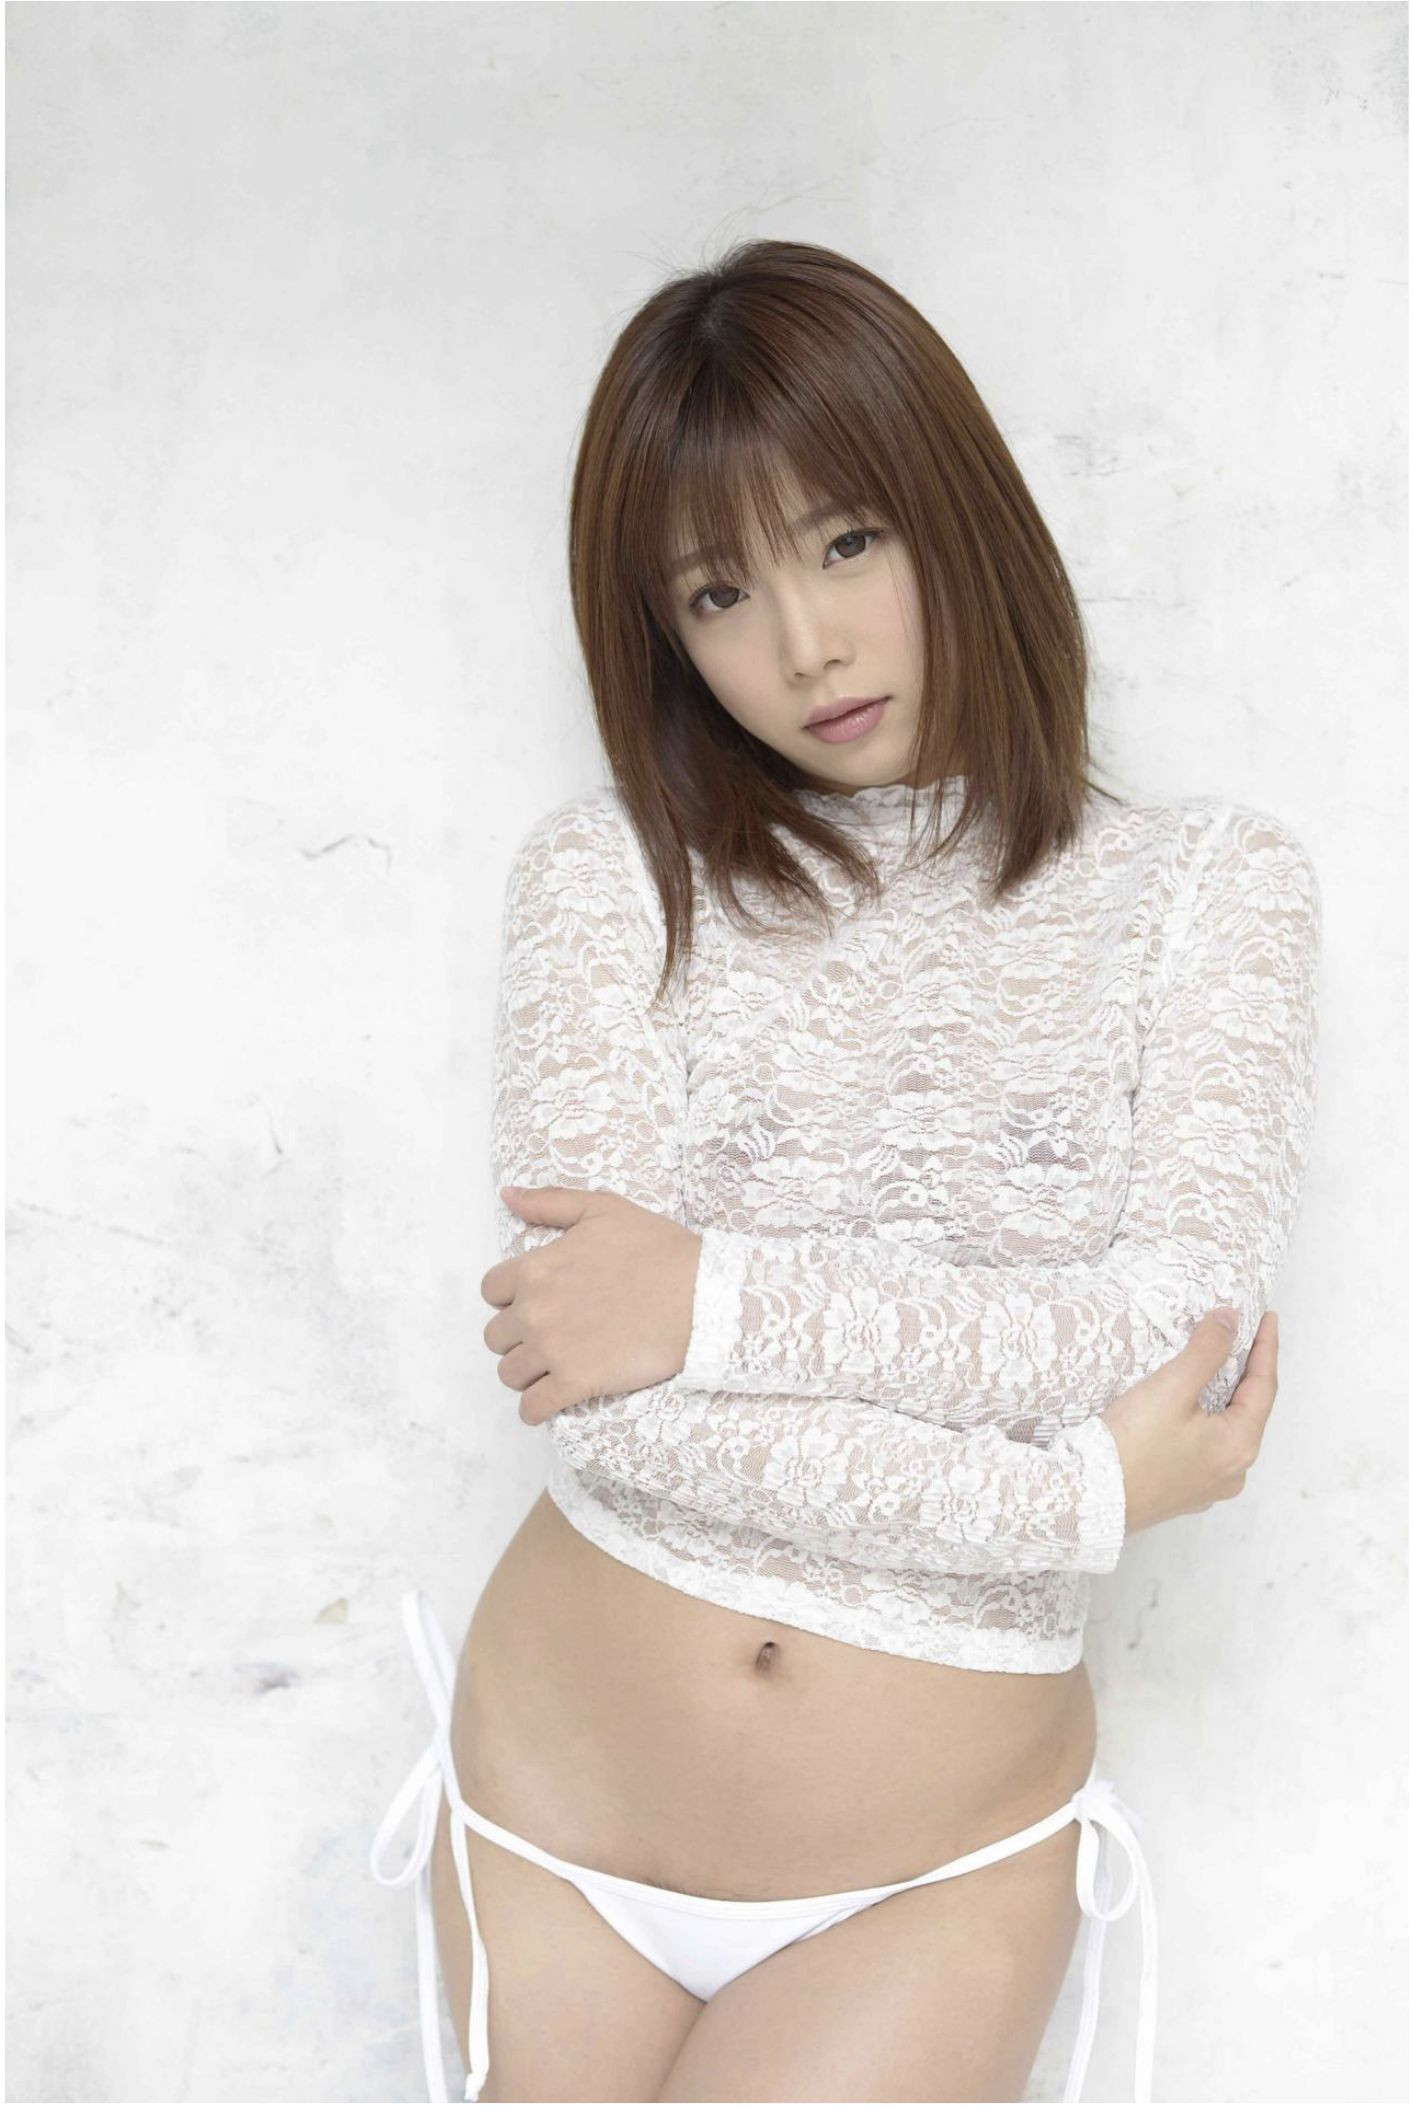 SOFT ON DEMAND GRAVURE COLLECTION 紗倉まな04 photo 026